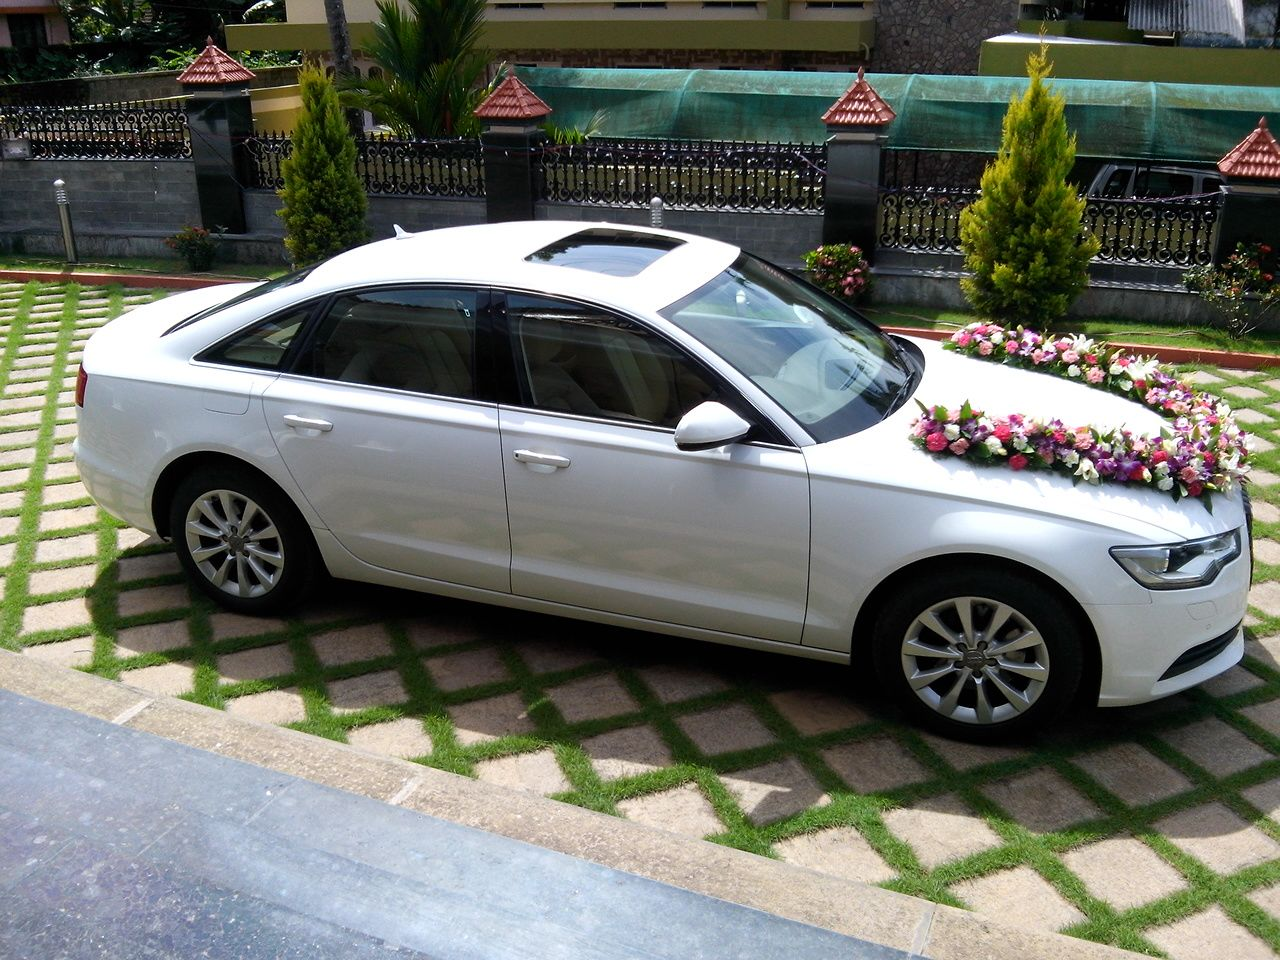 Wedding Cars in Erattupetta